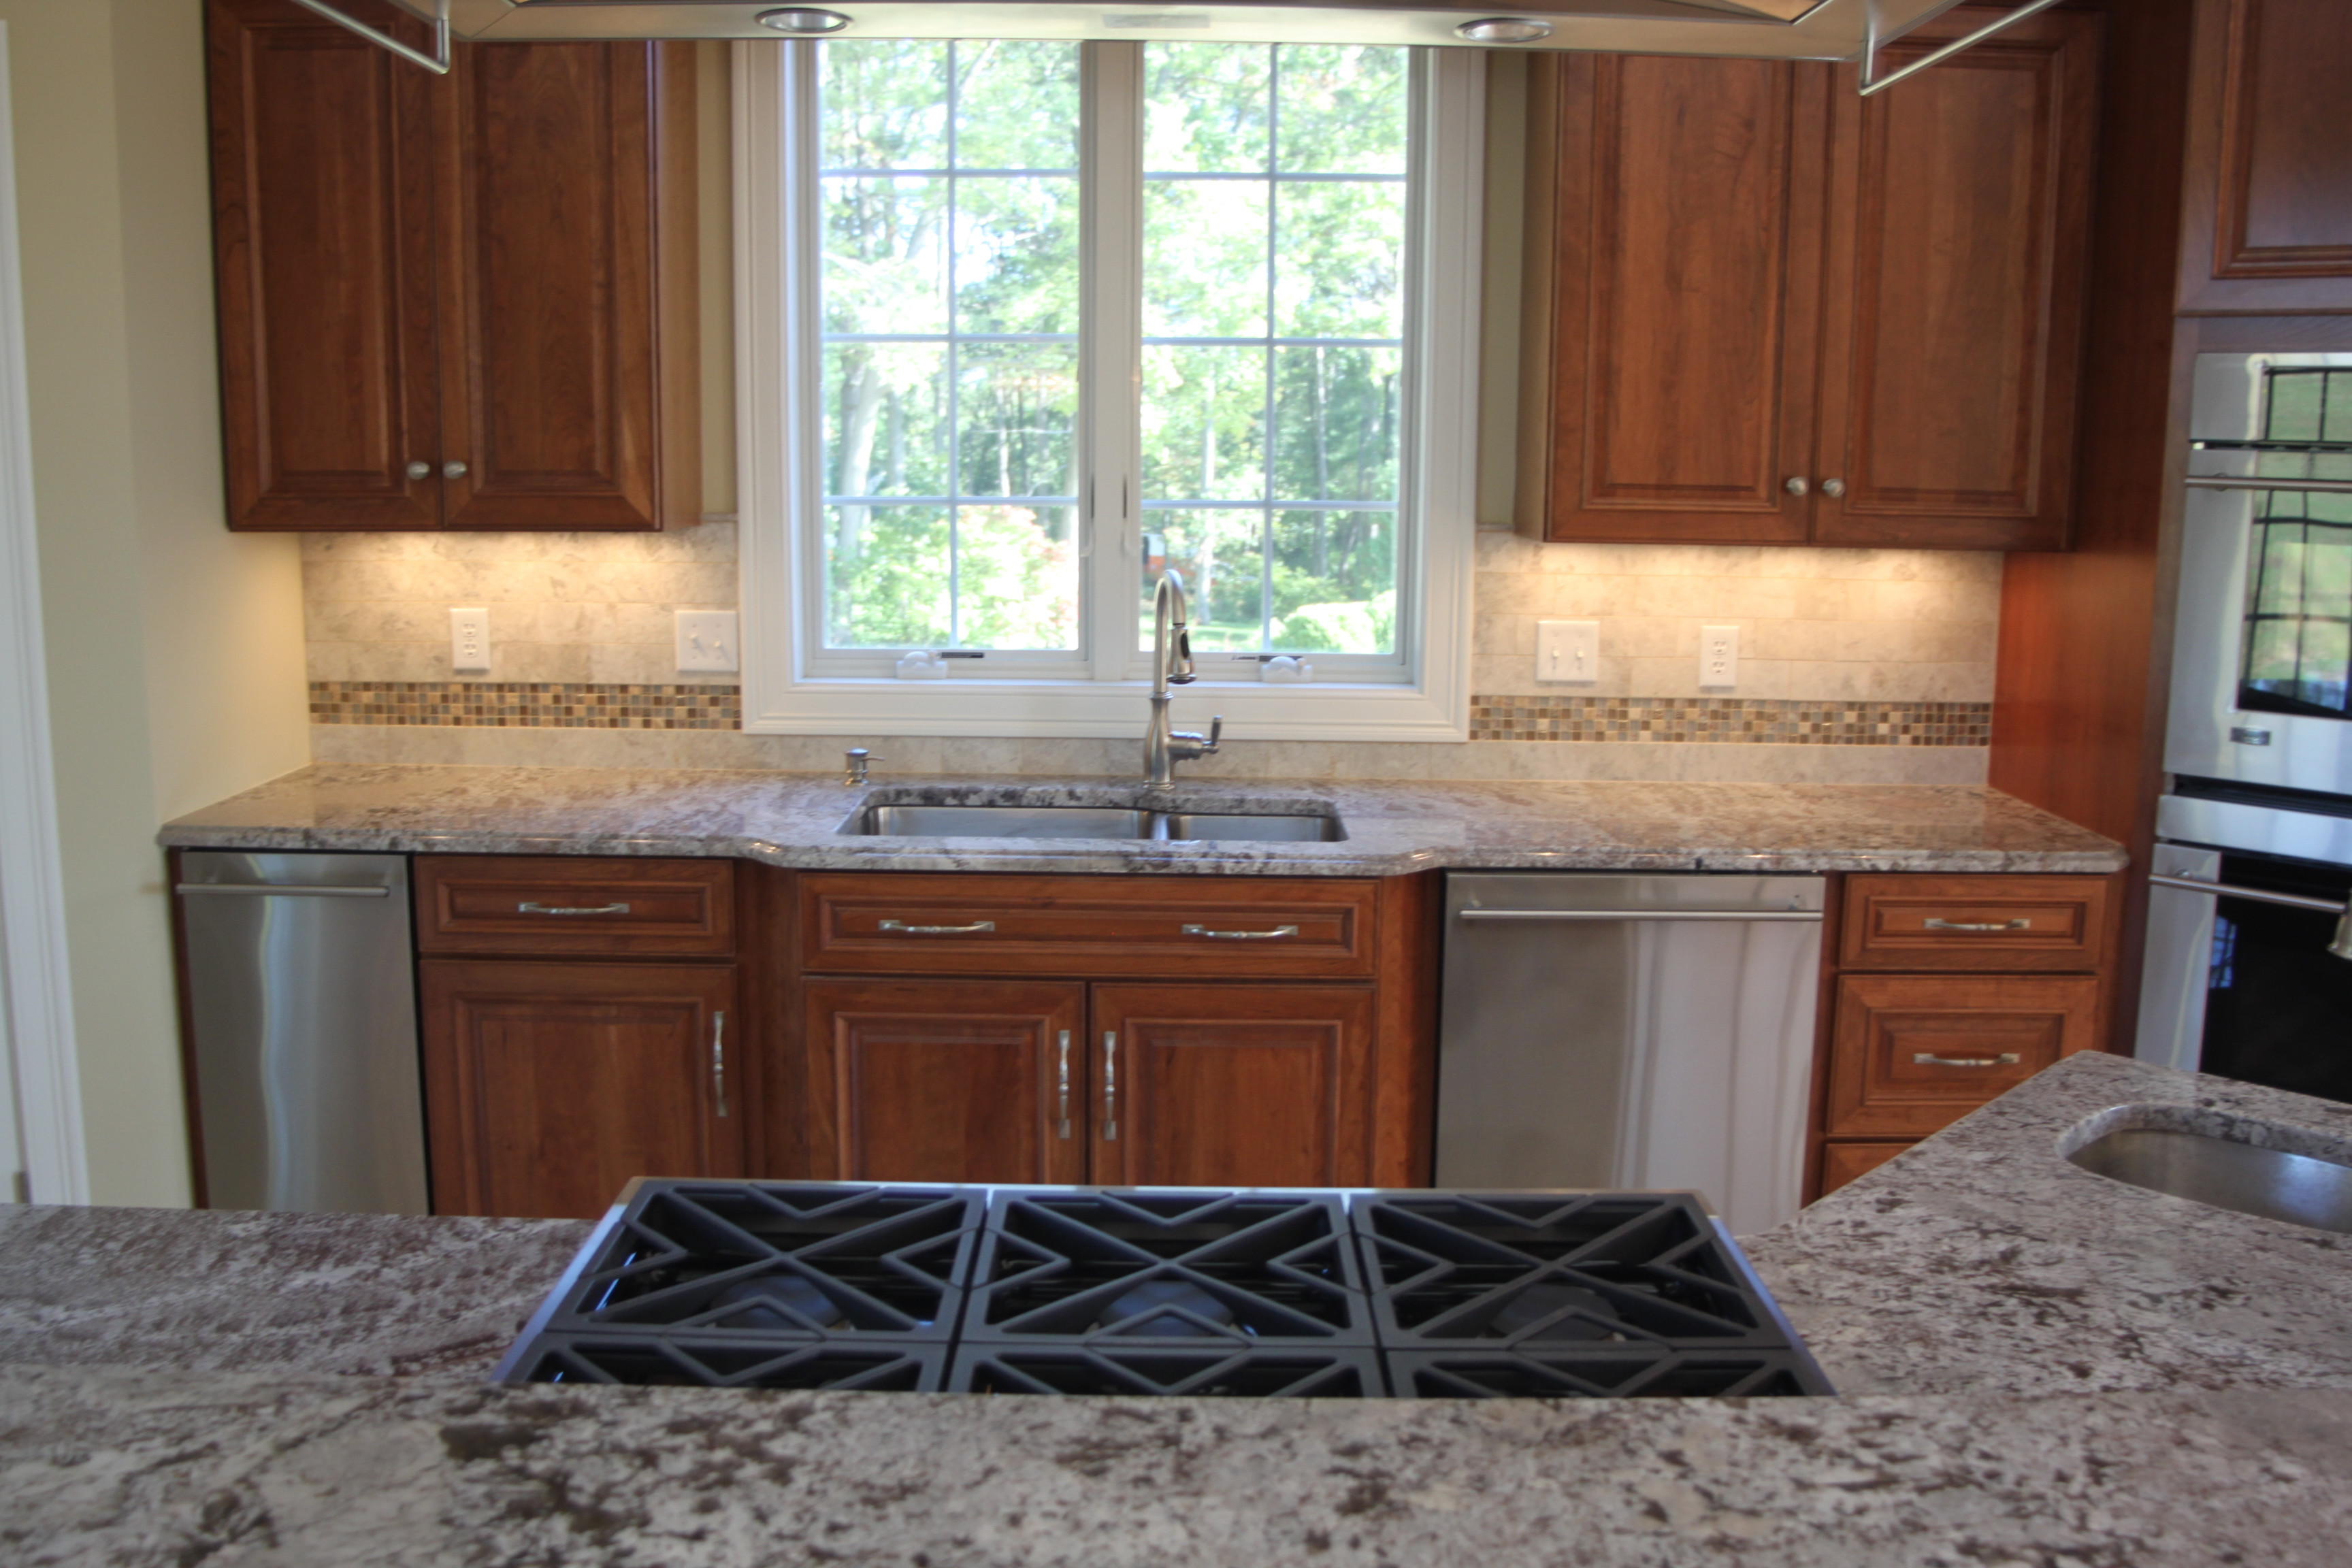 what is vinyl hardwood flooring of should your flooring match your kitchen cabinets or countertops inside should your flooring match your kitchen cabinets or countertops